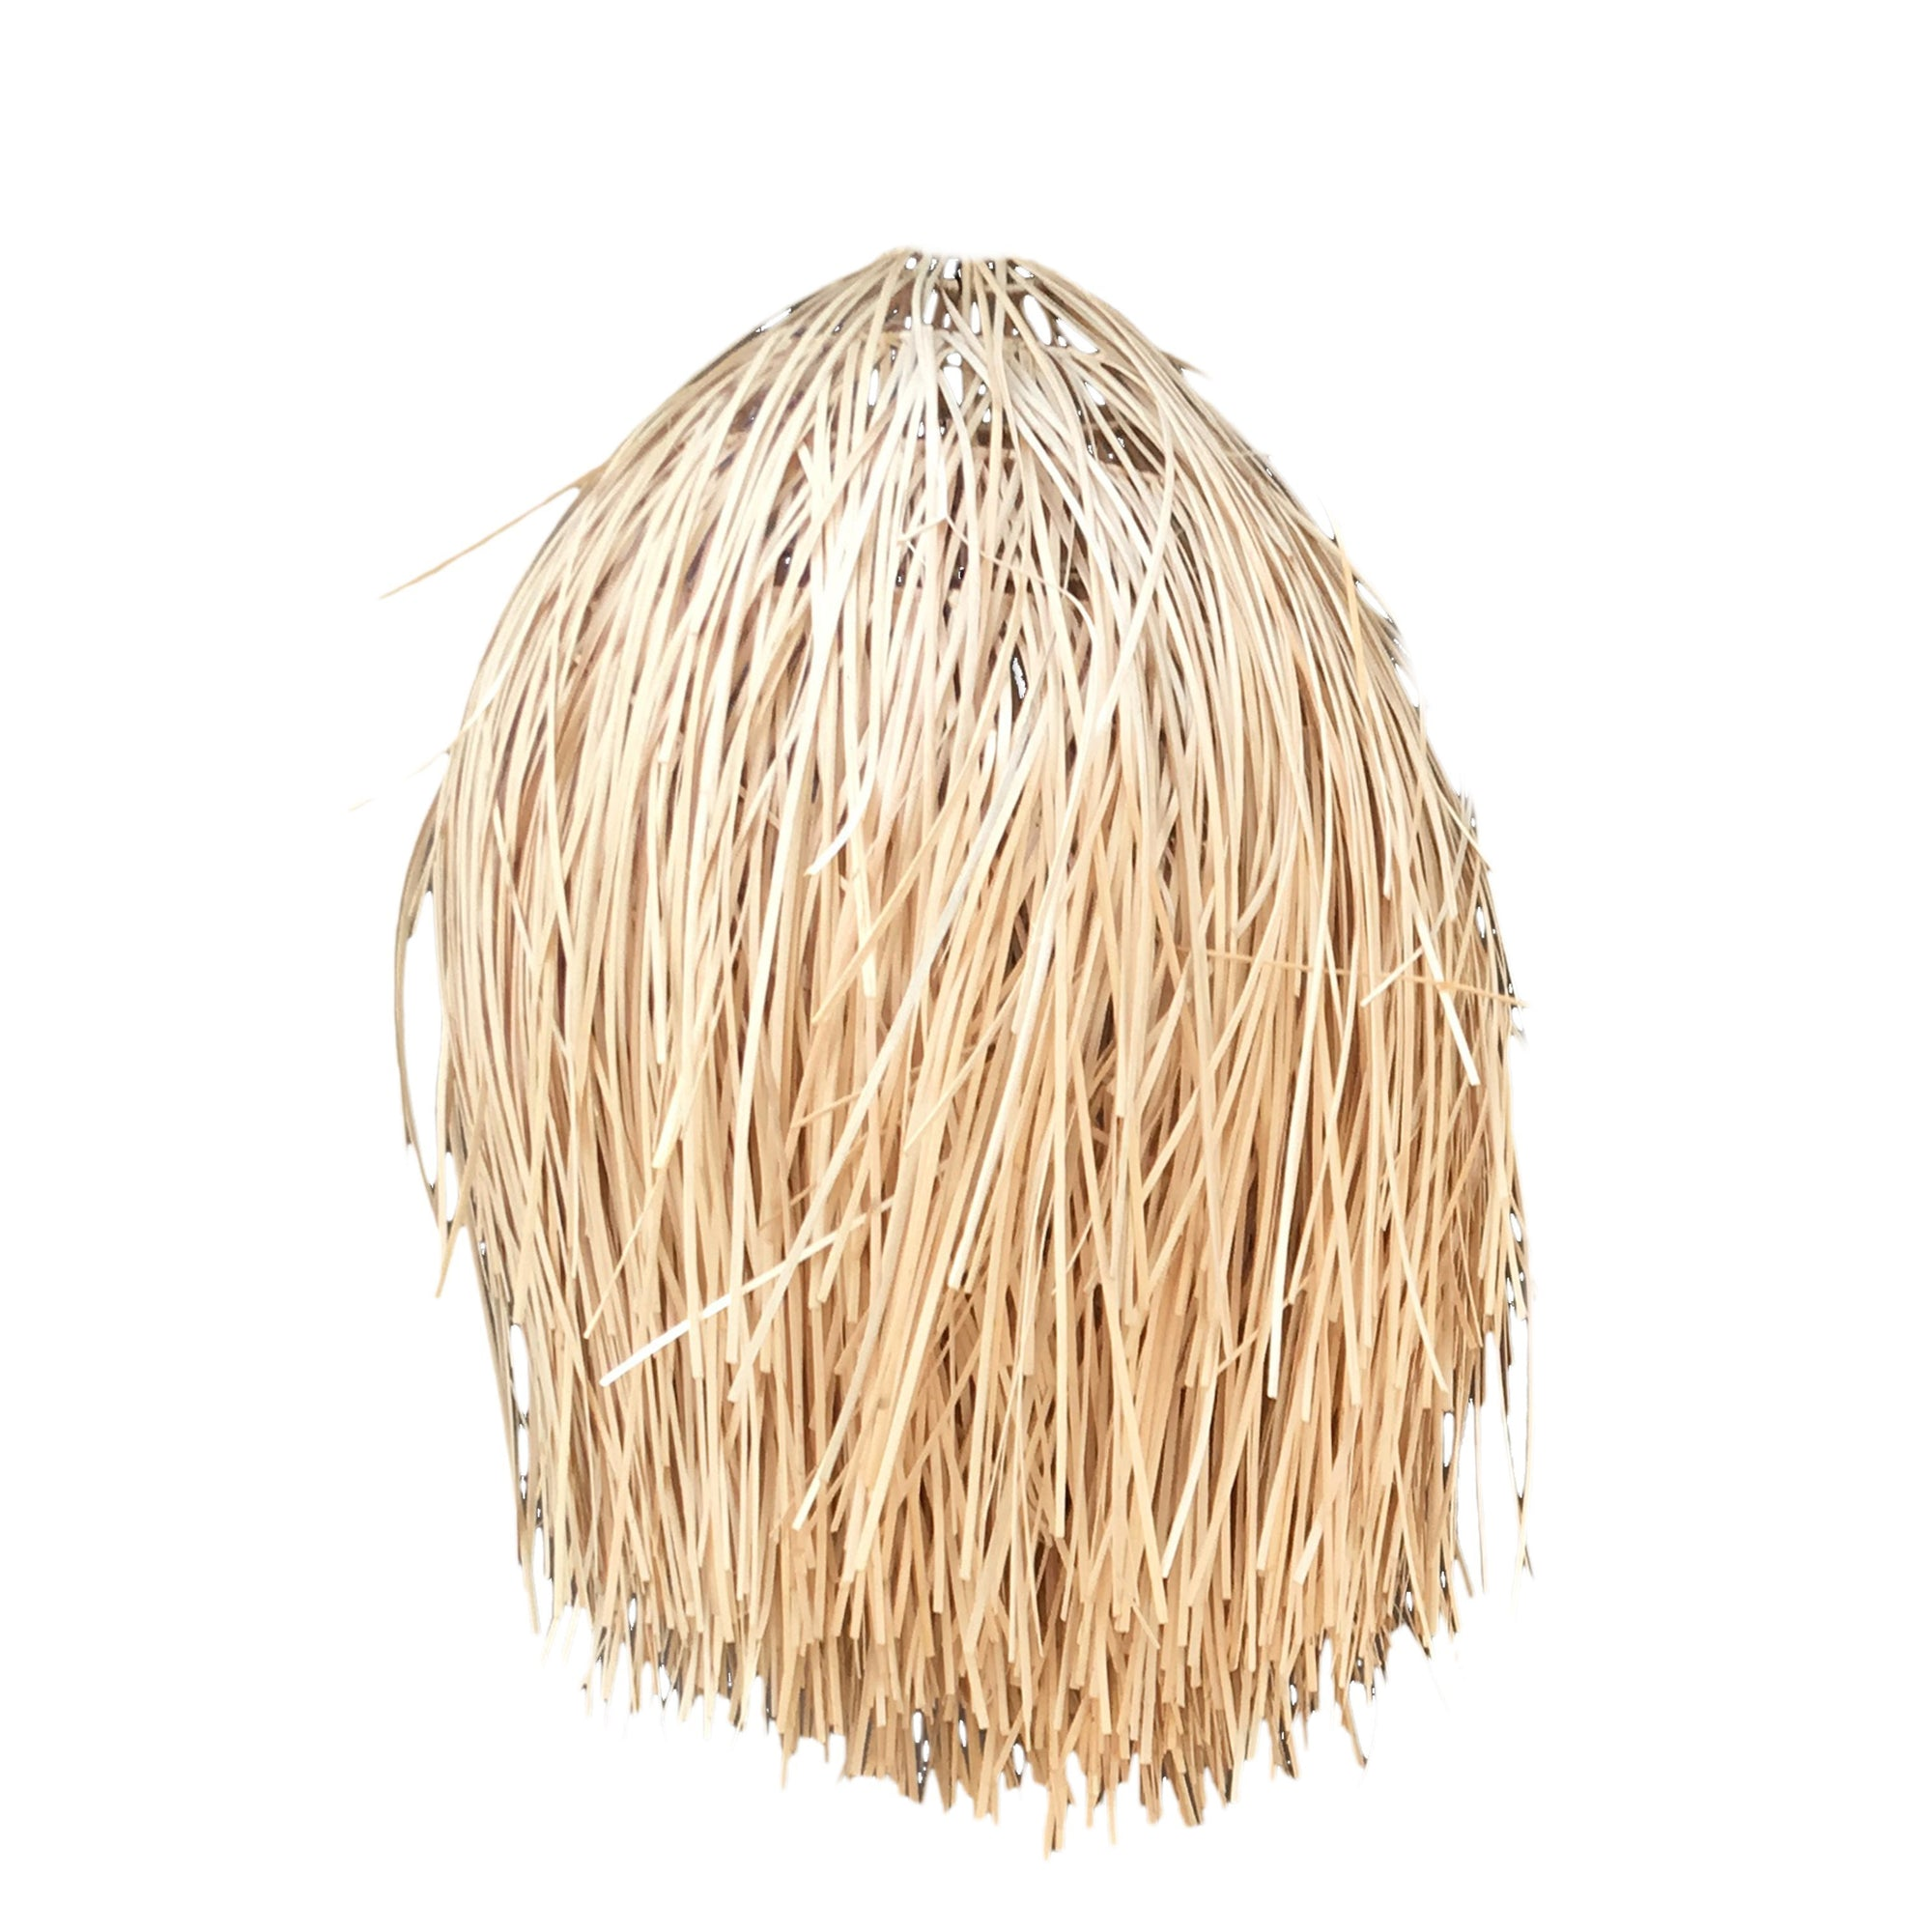 The Rattan Shaggy Pendant Natural - L